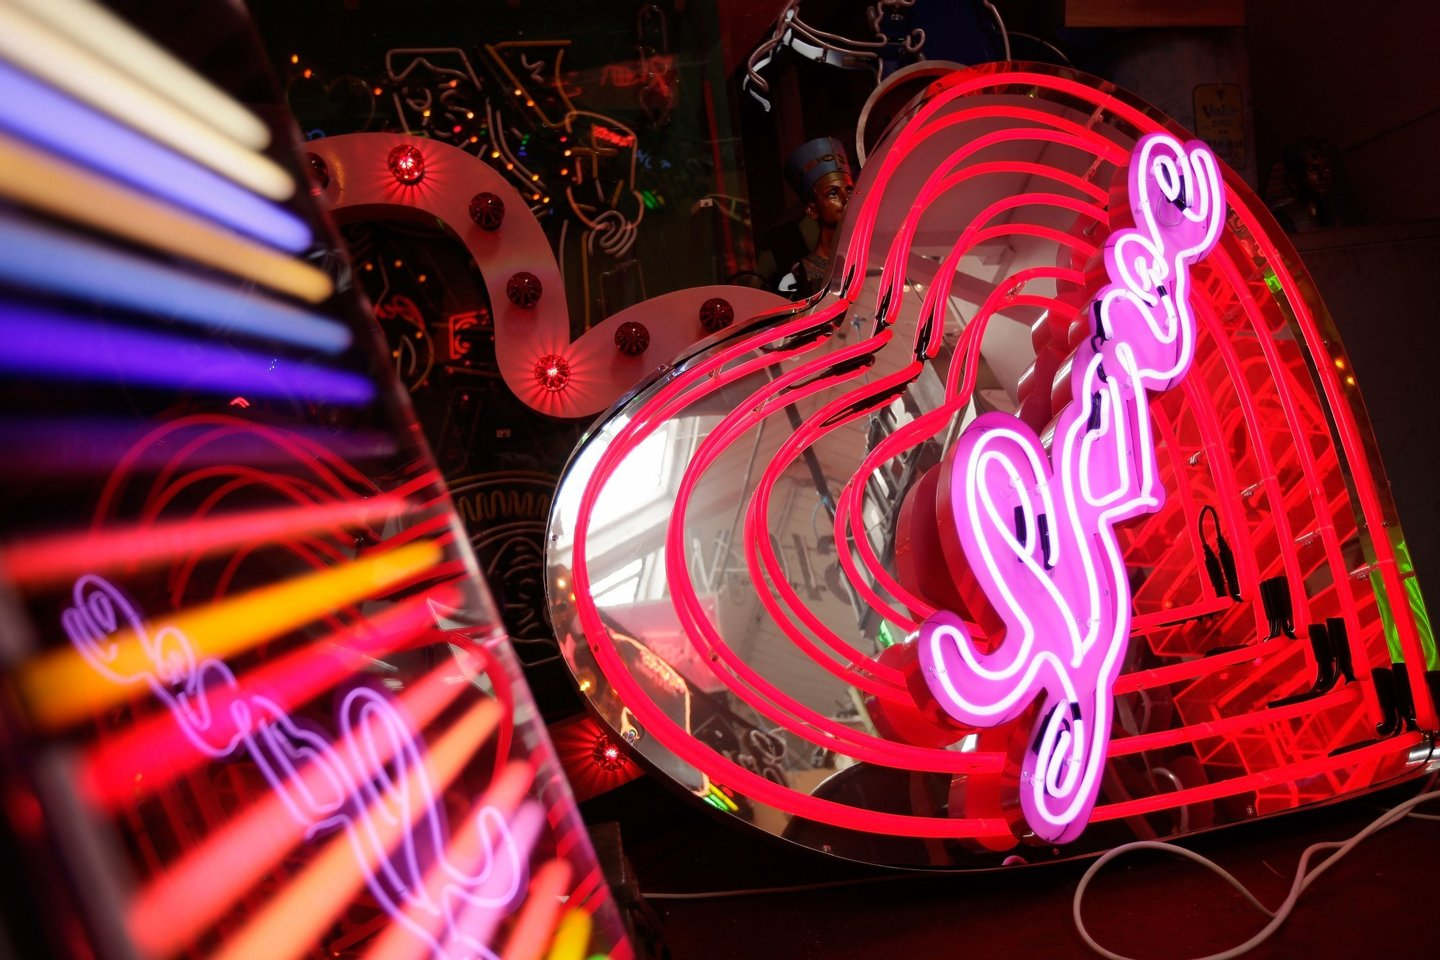 LONDON, ENGLAND - MAY 16: A neon heart sign used in a Florence and the Machine video lies in artist Chris Bracey's shed on May 16, 2011 in London, England. He has been making neon signs and artworks for 38 years, succeeding his father in running the family business. His pieces have featured in many famous advertising campaigns, shops, movies and TV series. Pieces are either commissioned for specific purposes, or designed as bespoke creations that go on to be sold in art galleries worldwide, often to celebrity buyers. (Photo by Matthew Lloyd/Getty Images)